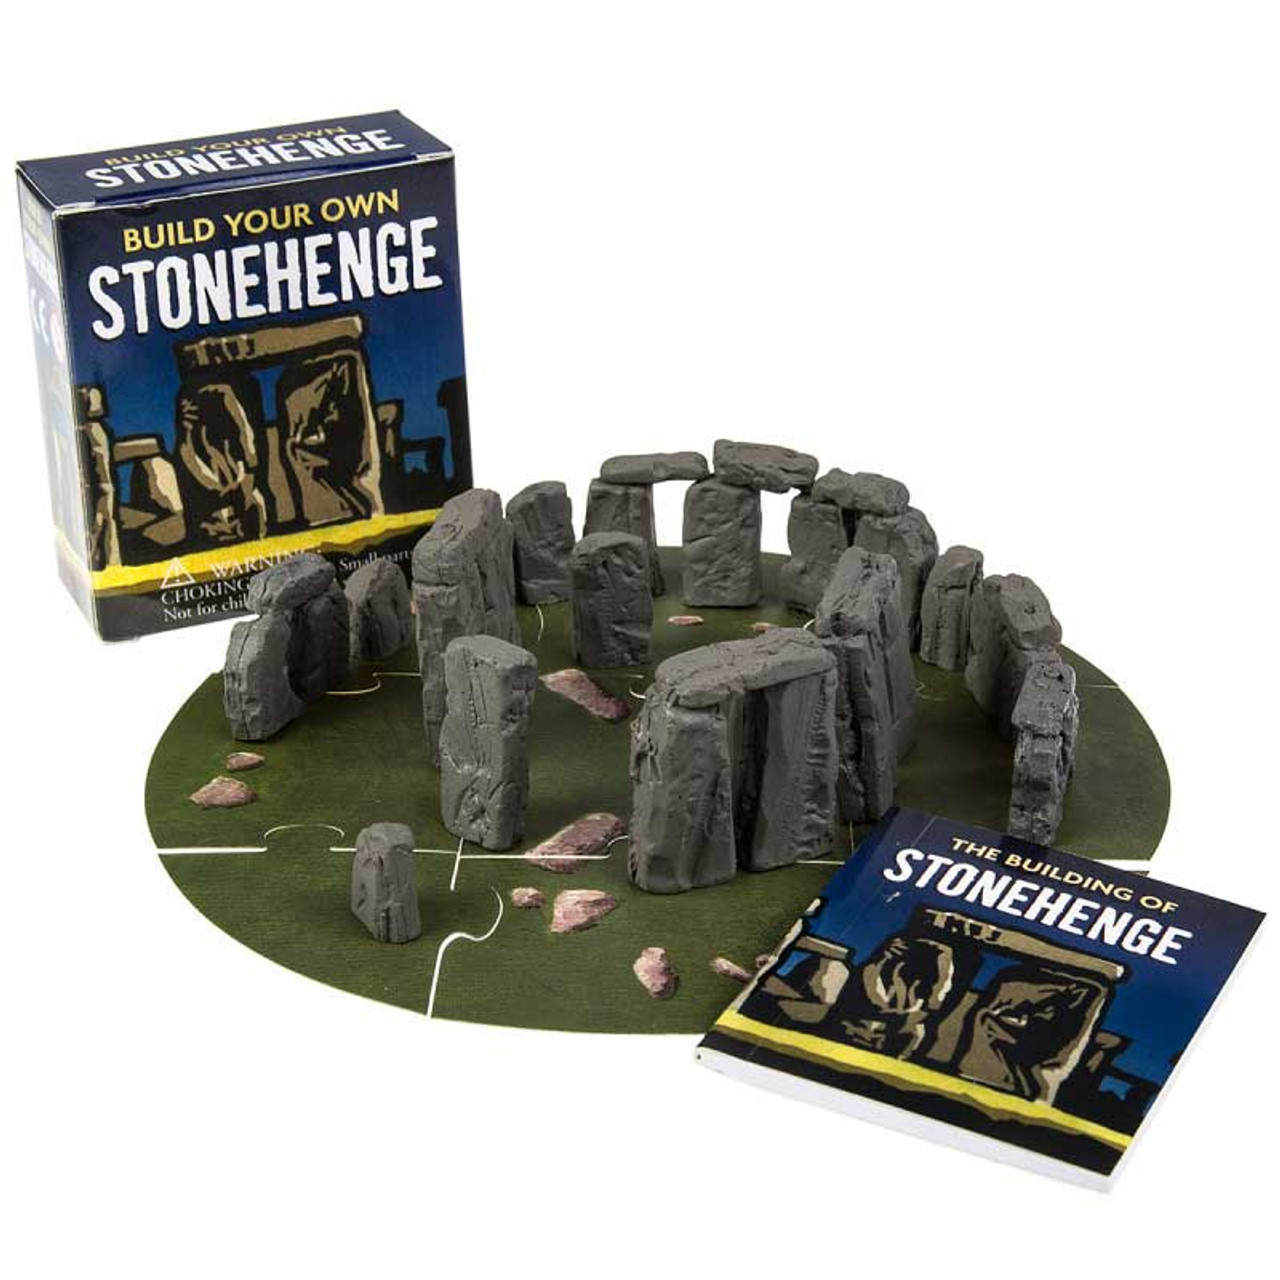 Stonehenge Mega Mini Kit